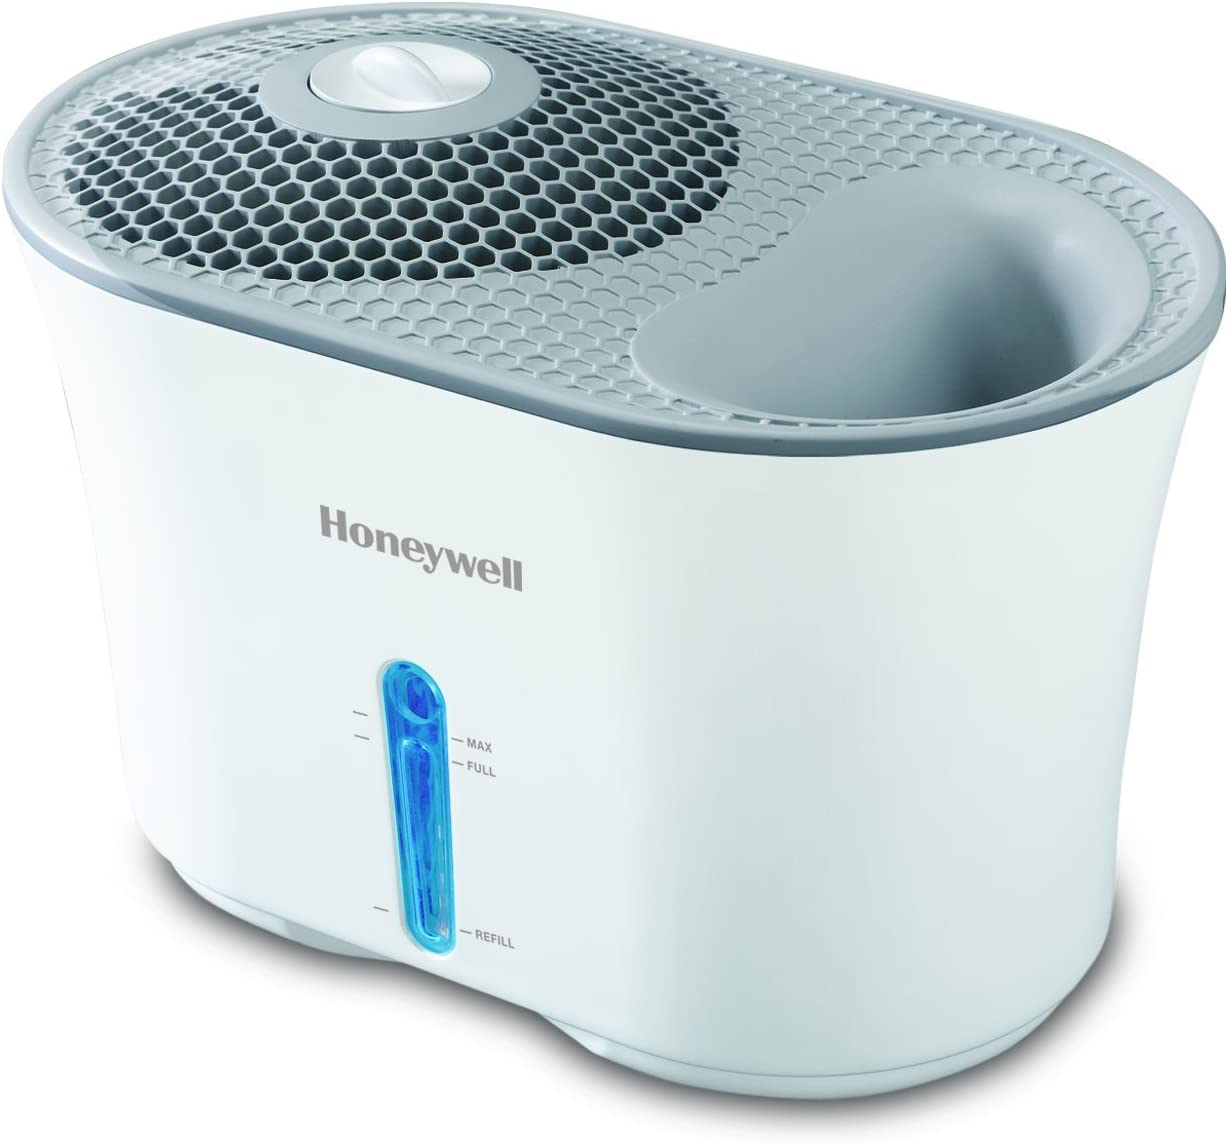 Honeywell Easy to Care Cool Mist Humidifier, HCM-710,White